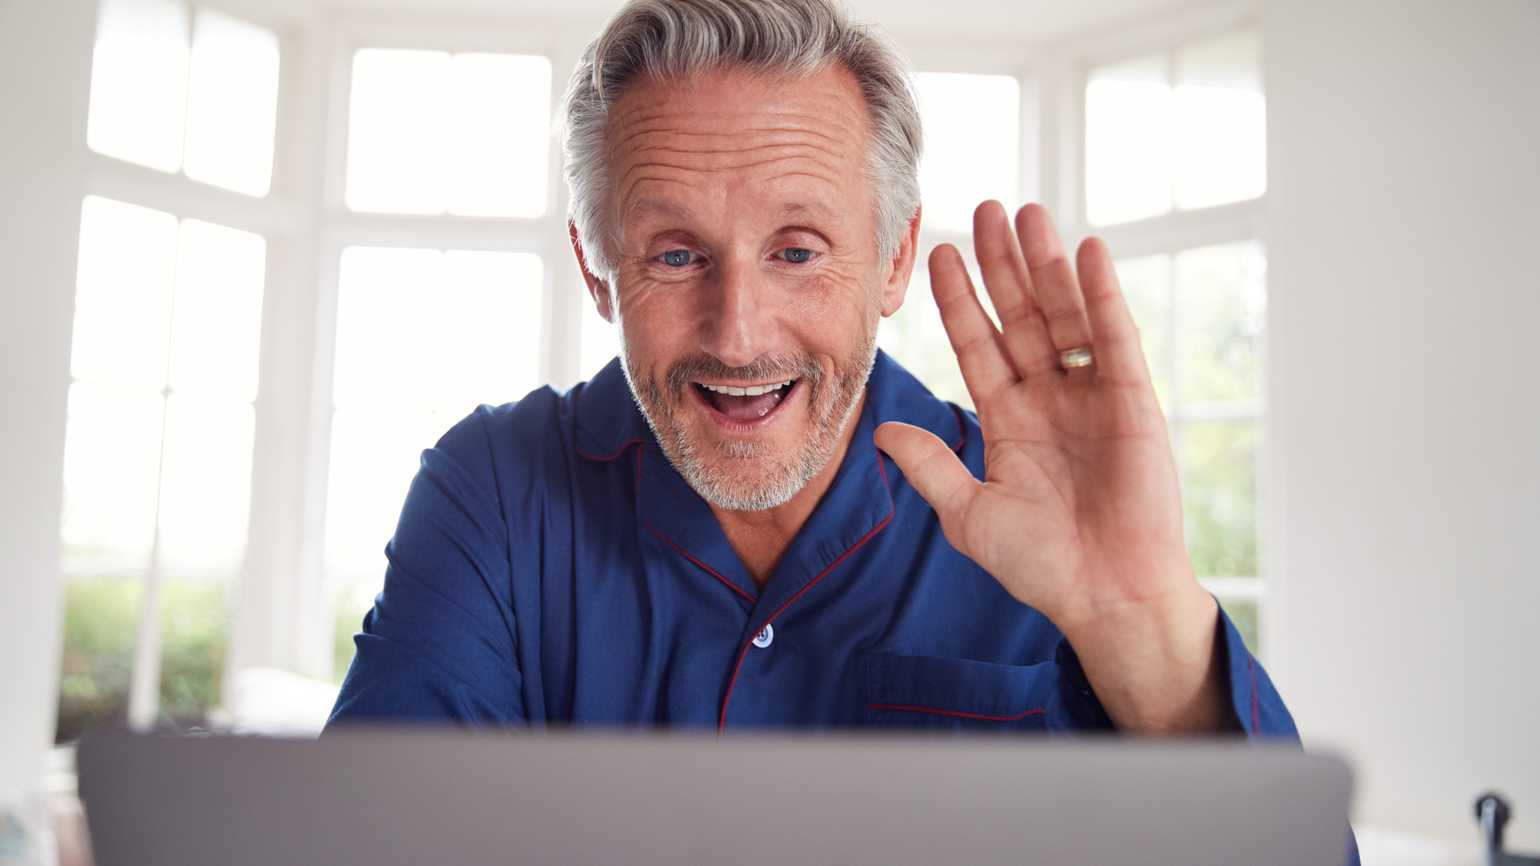 An older gentleman greeting someone on his laptop.